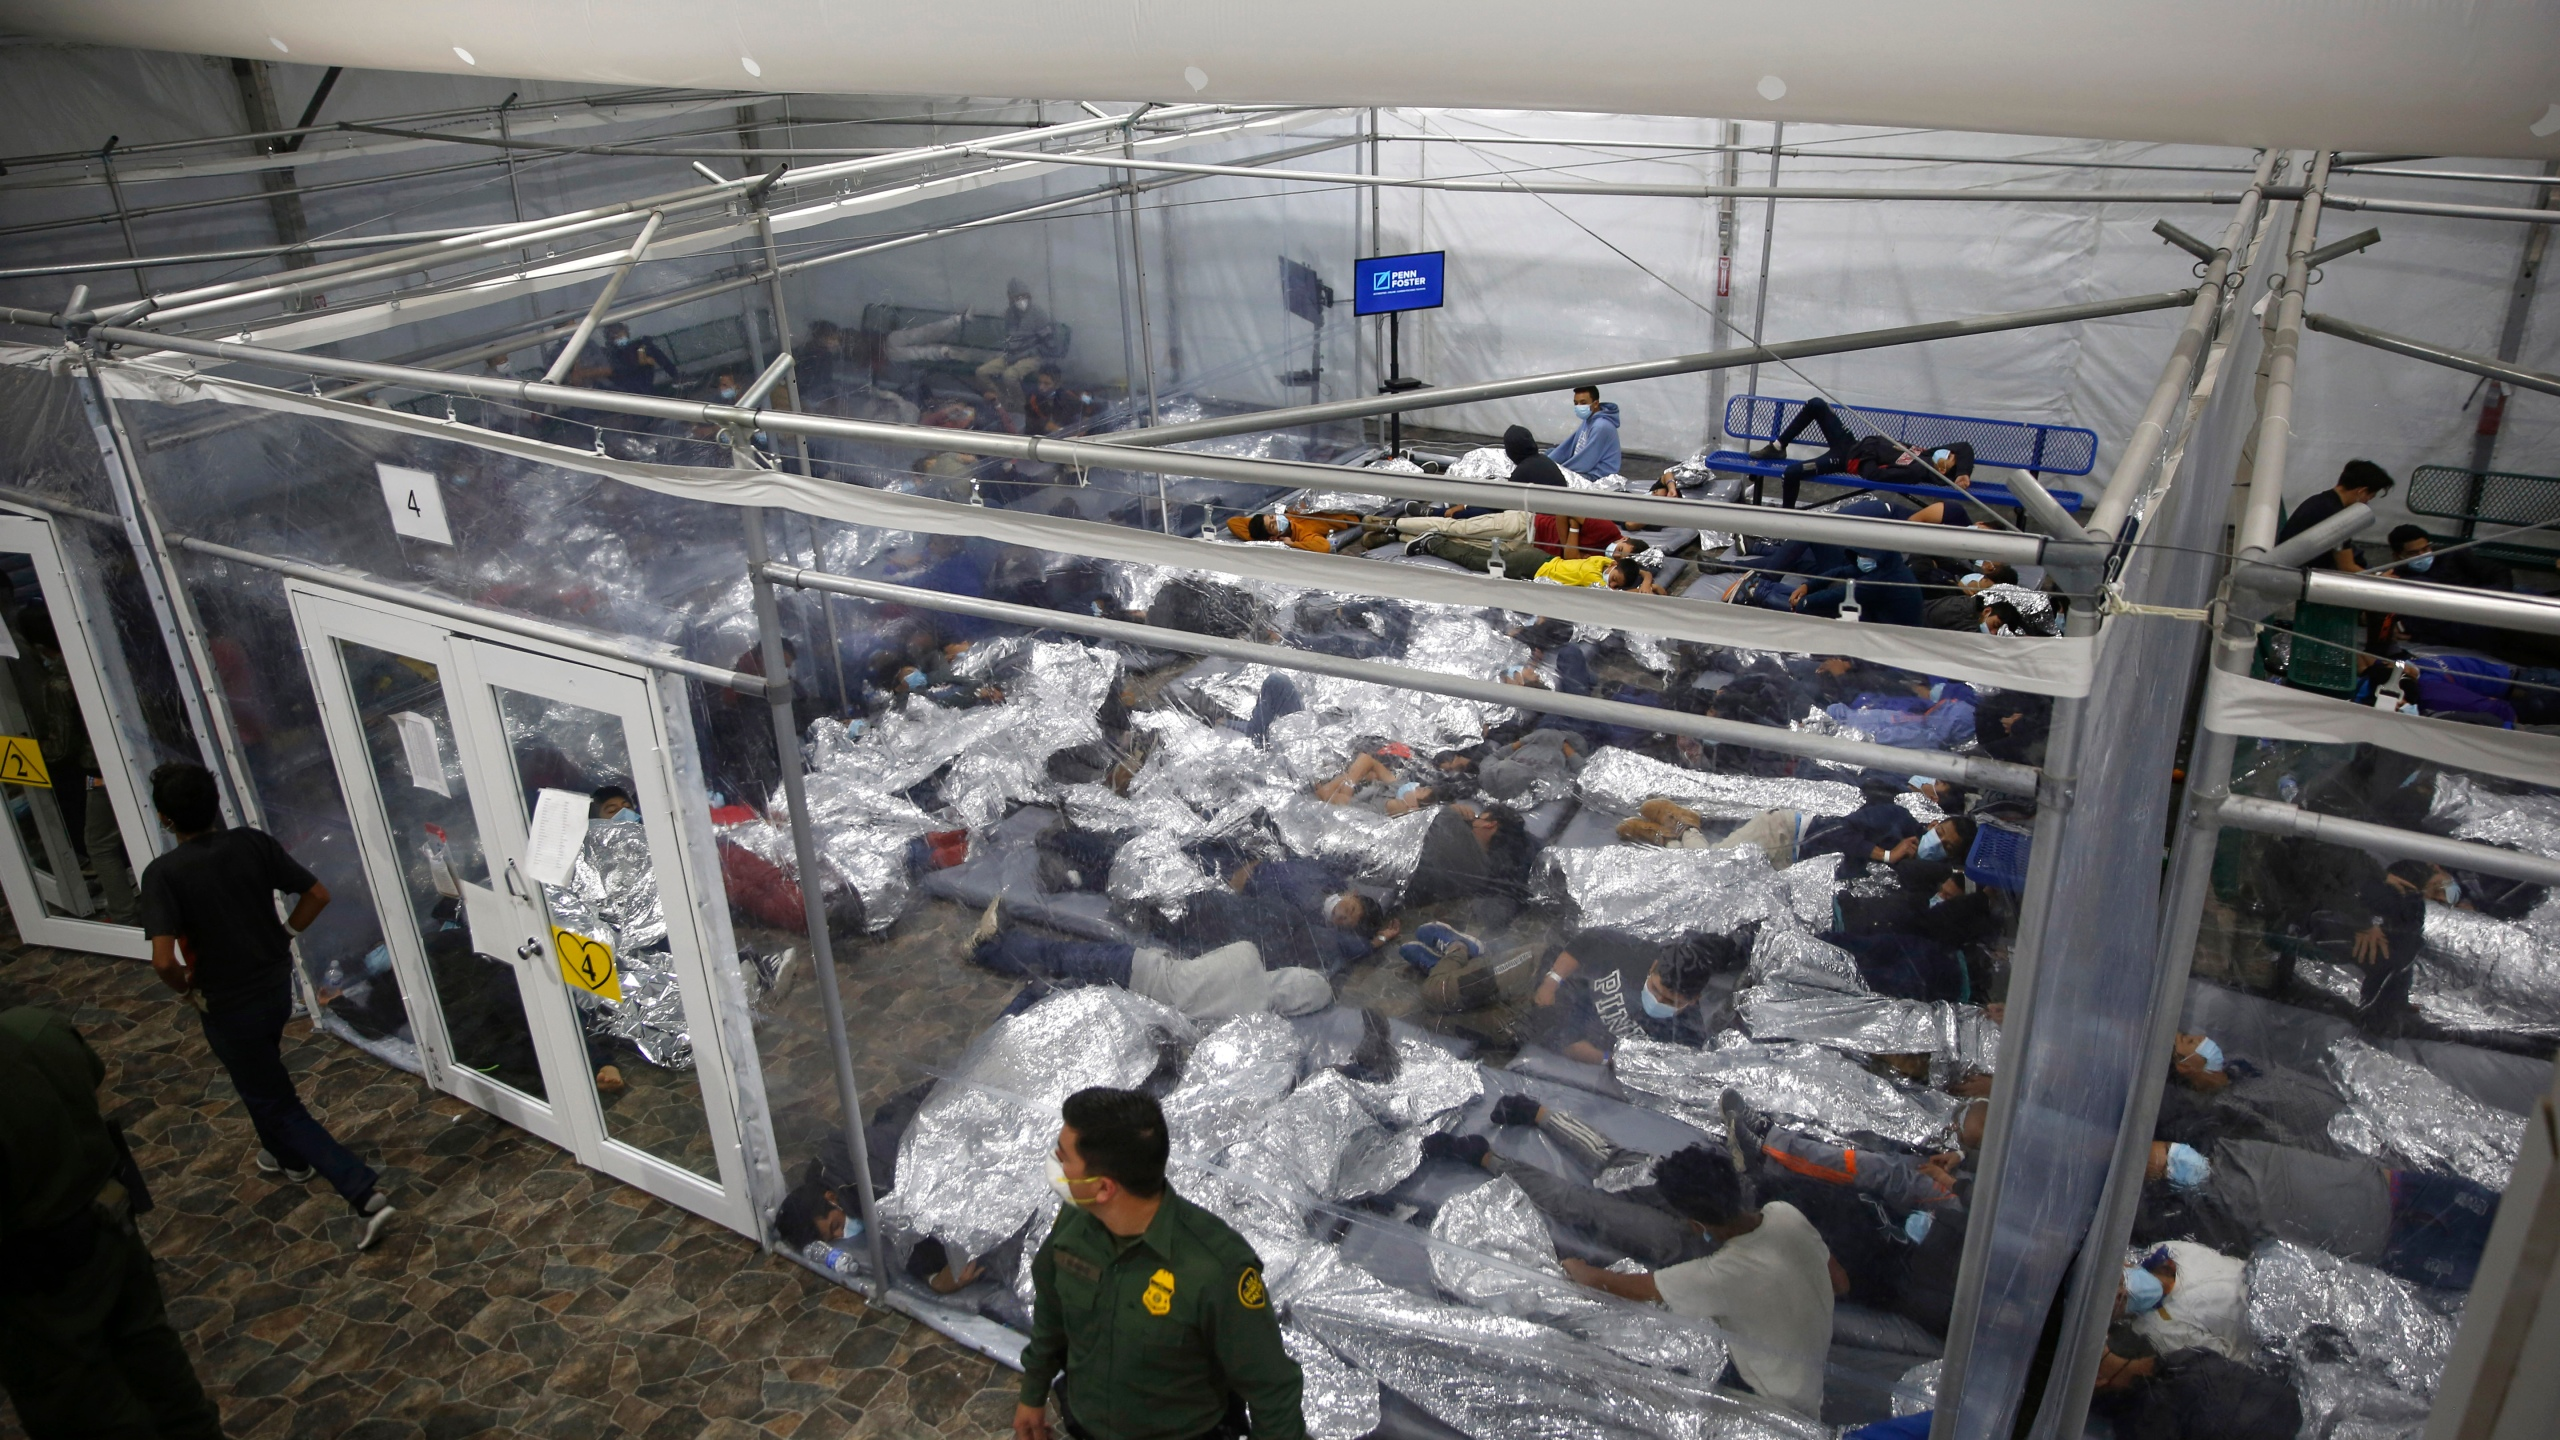 """In this March 30, 2021, file photo, minors lie inside a pod at the Donna Department of Homeland Security holding facility, in Donna, Texas. A move by Texas Gov. Greg Abbott to shutter dozens of shelters housing about 4,000 migrant children is threatening to disrupt a national program offering care for minors who cross the U.S.-Mexico border. The U.S. Department of Health and Human Services said Wednesday, June 2 2021, that it didn't intend to close any facilities but that it was """"assessing"""" the Republican governor's late Tuesday disaster declaration. (AP Photo/Dario Lopez-Mills, Pool, File)"""